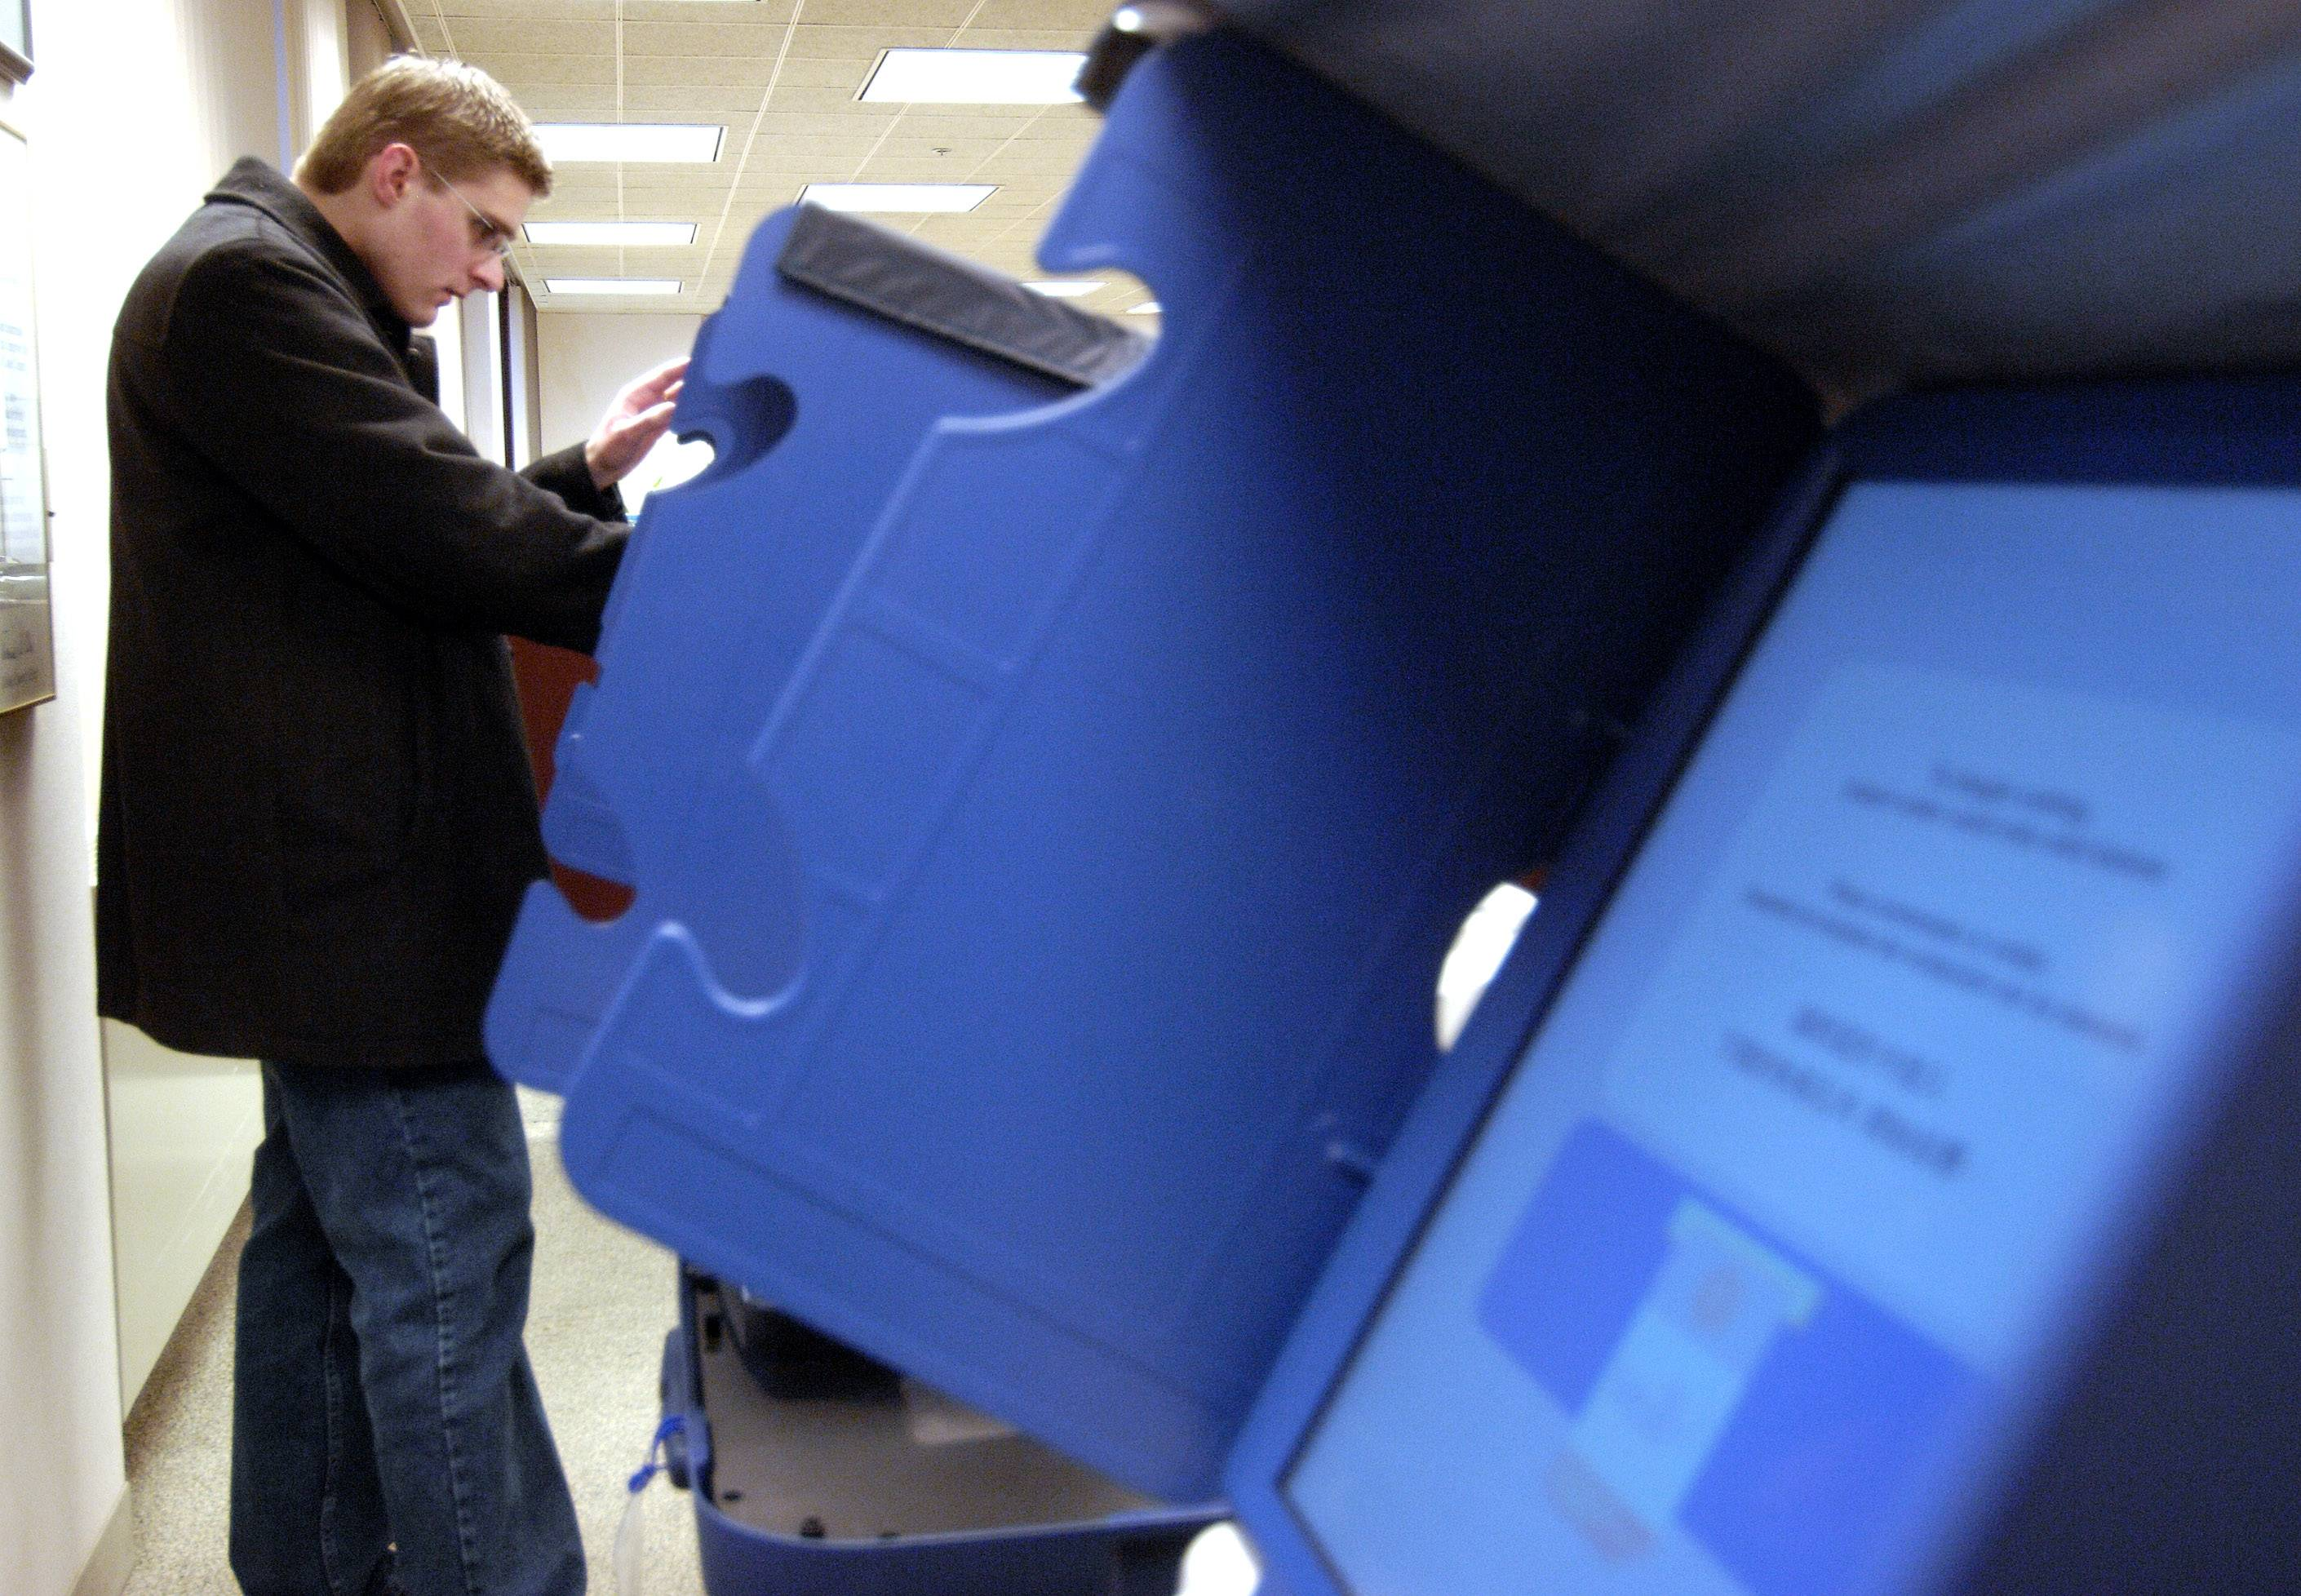 Early voting began Monday morning at the Cook County courthouse in Rolling Meadows, as it did here in 2008, as well as about 50 other locations in suburban Cook County. It will continue until Nov. 7.